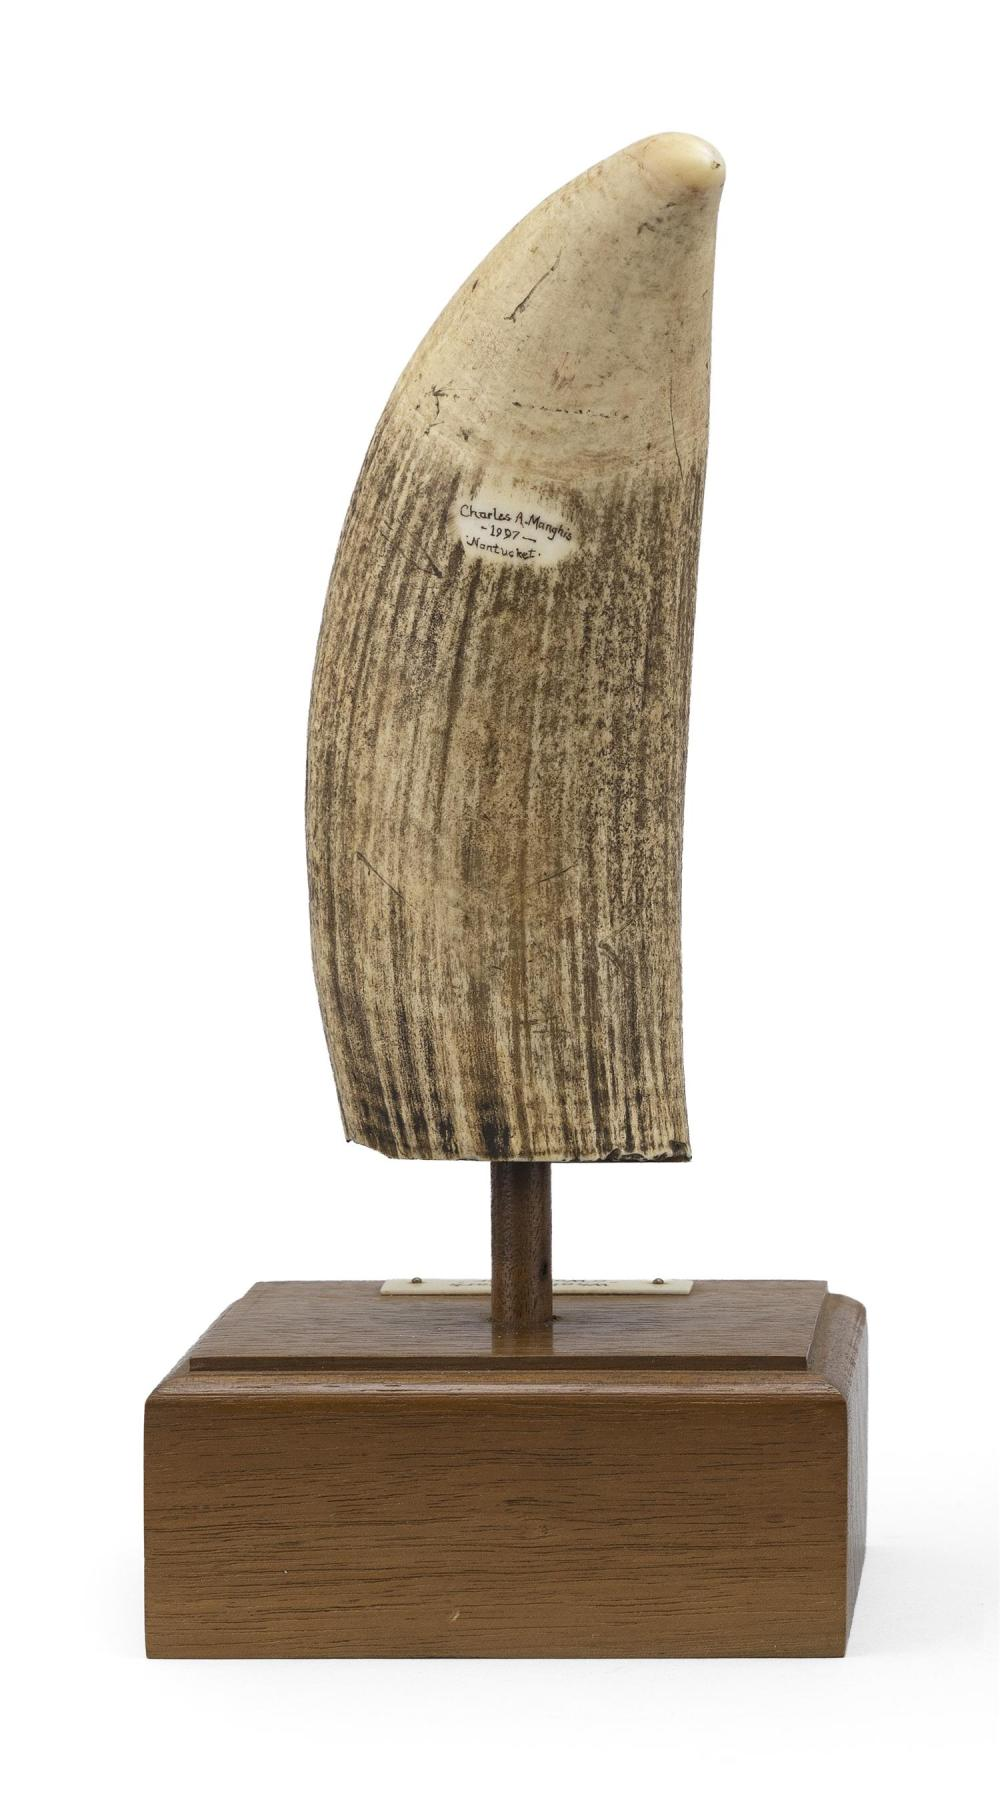 * POLYCHROME ENGRAVED WHALE'S TOOTH BY CHARLES A. MANGHIS OF NANTUCKET Oval reserve depicts a stern-view portrait of the whaling bar..